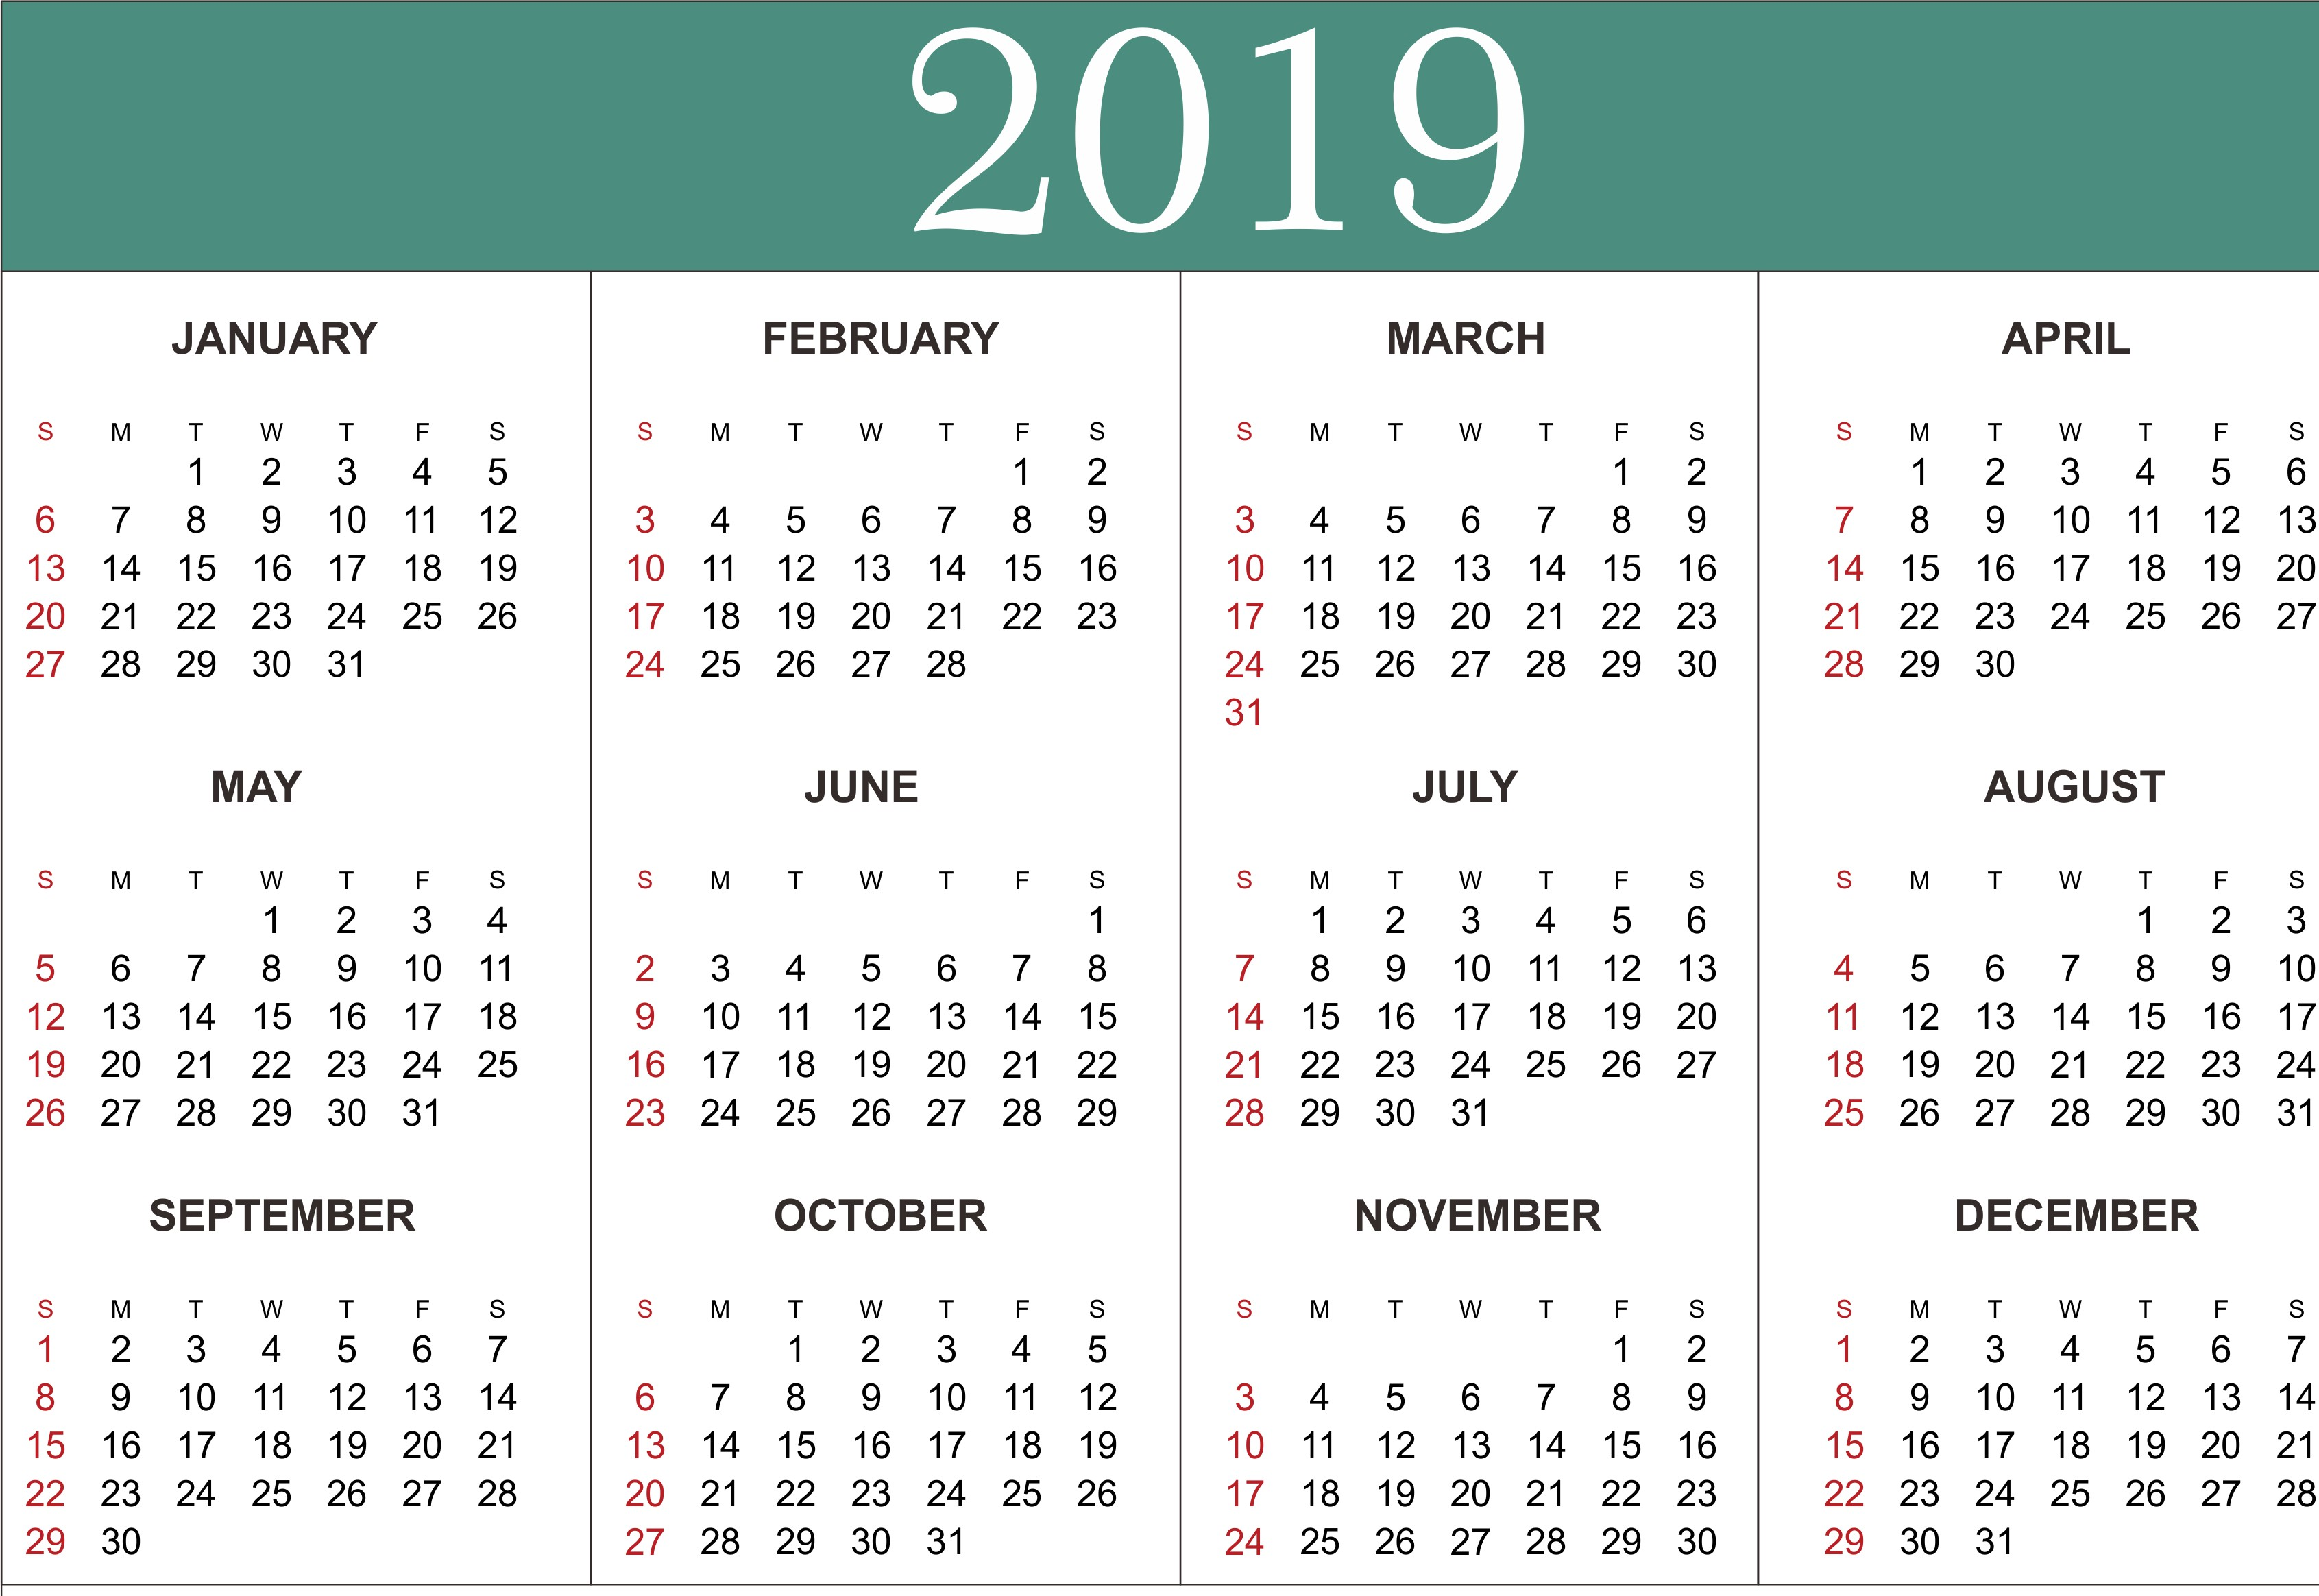 March Calendar Png Más Recientemente Liberado Free Yearly Calendar Template 2019 Of March Calendar Png Actual Index Of Images 0 0d